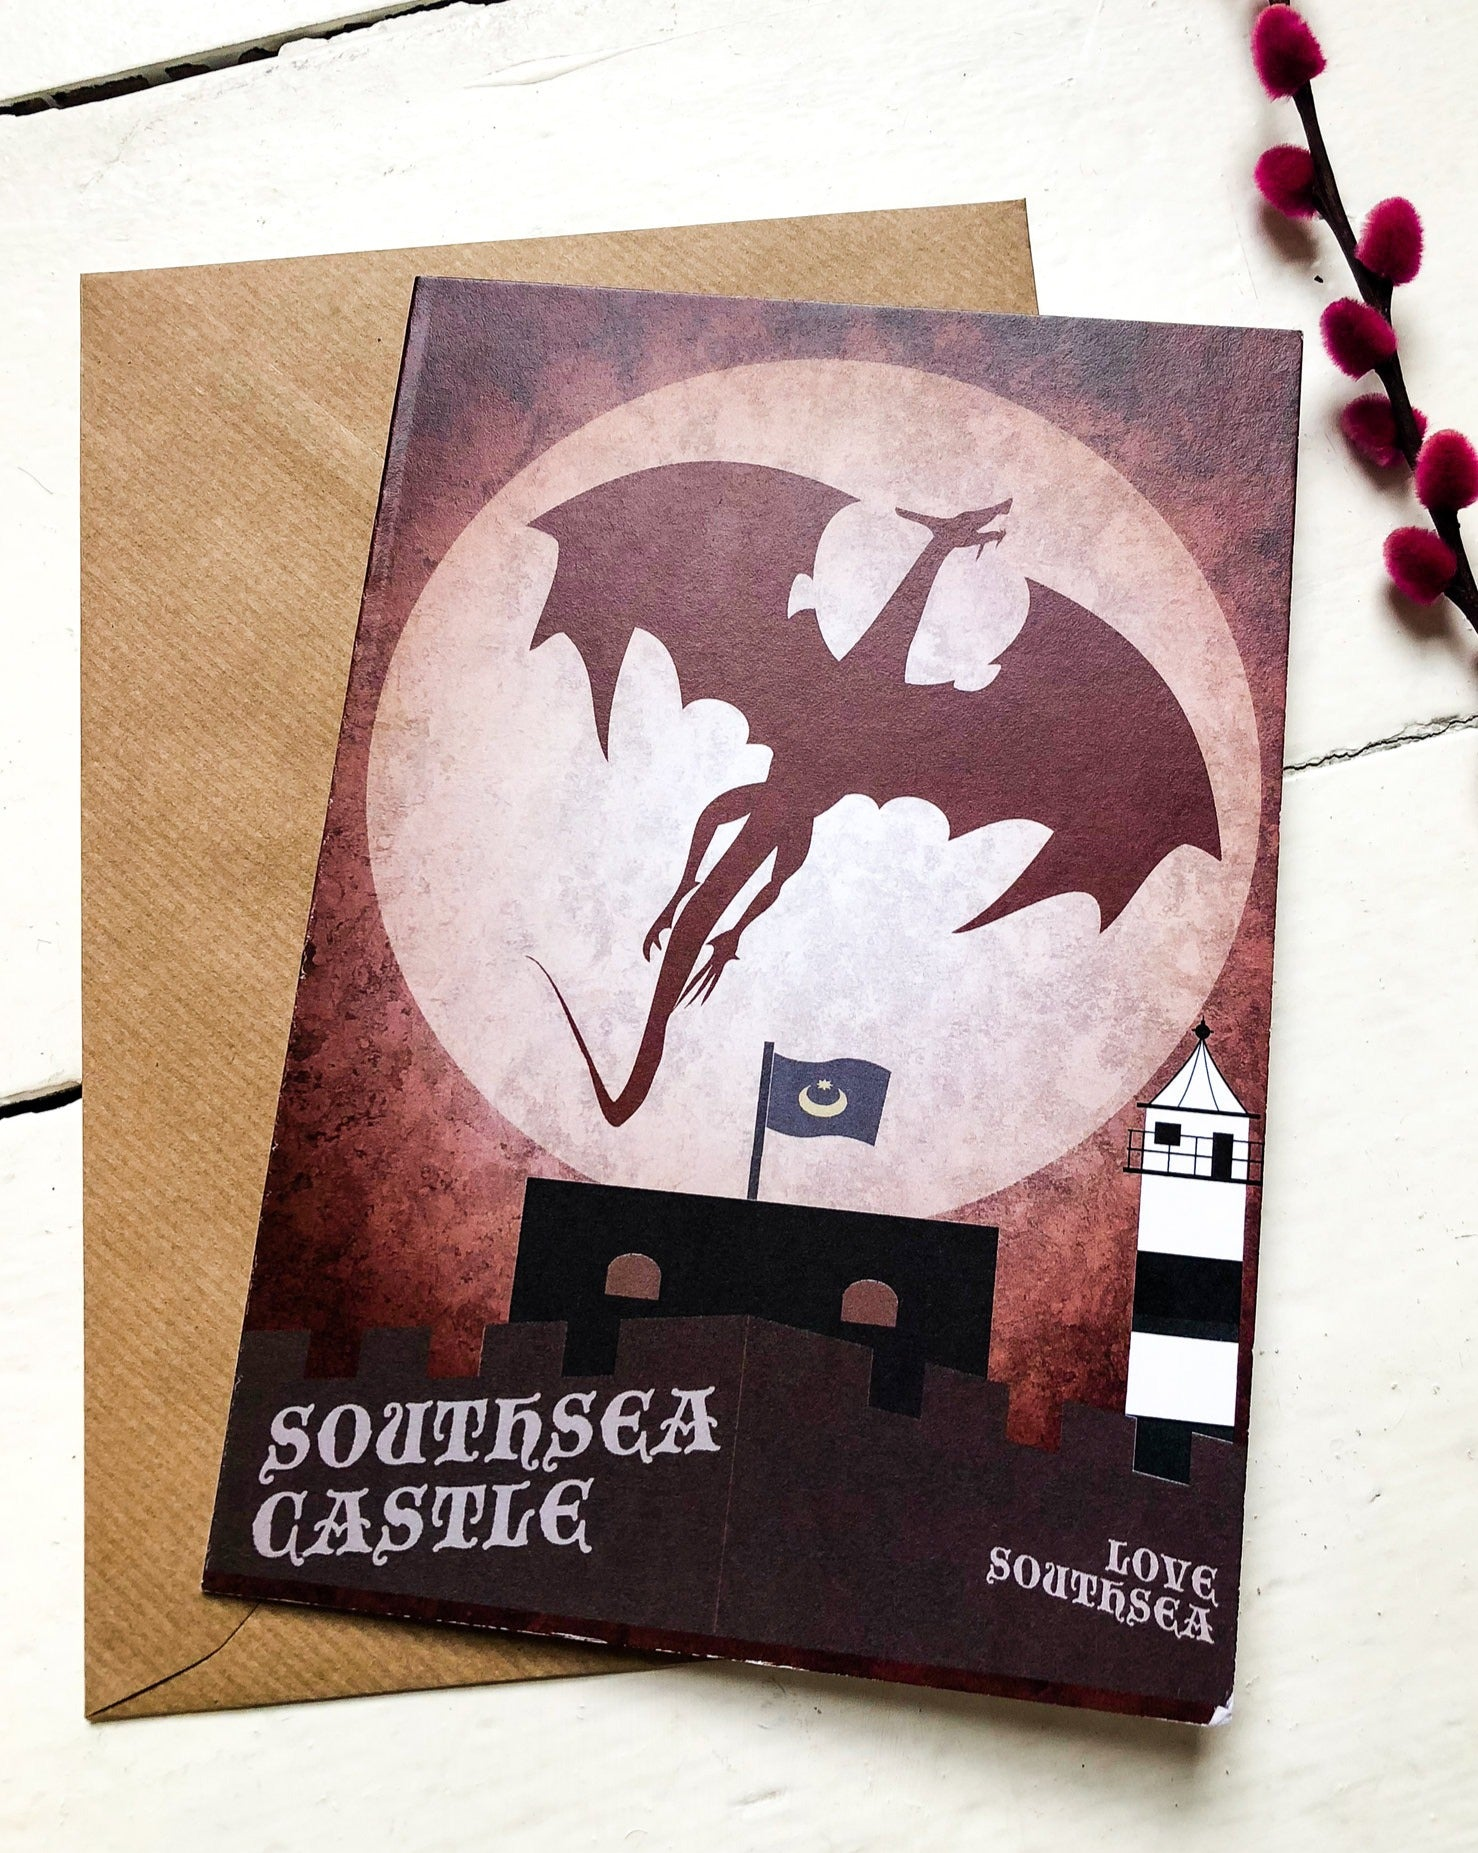 The Dragon of Southsea Castle Card